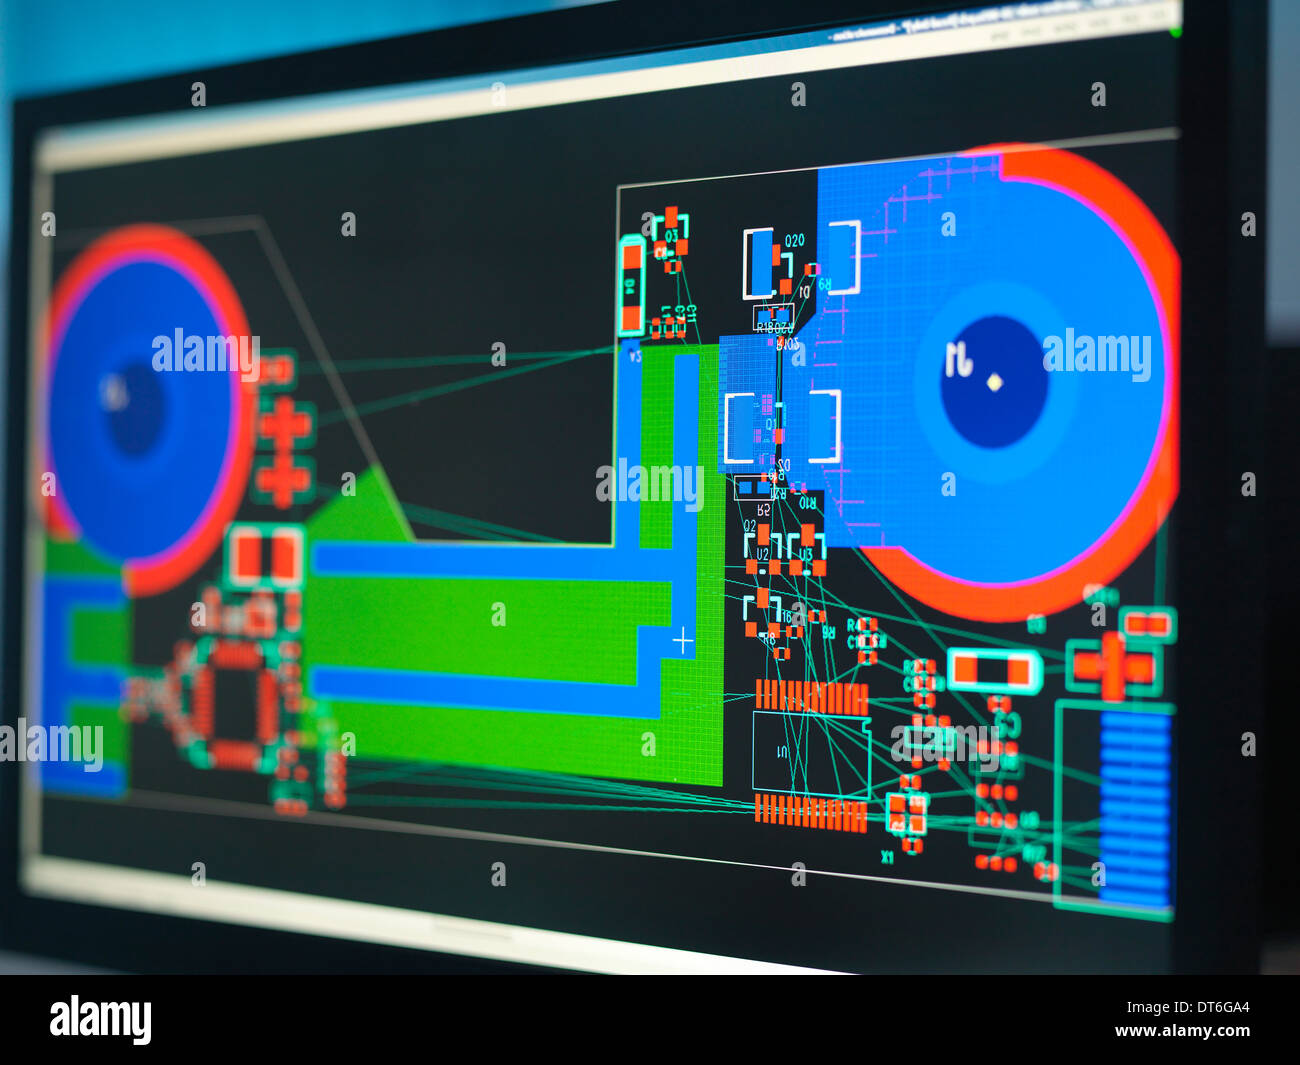 Computer screens with electronic circuitry designs for automotive use - Stock Image